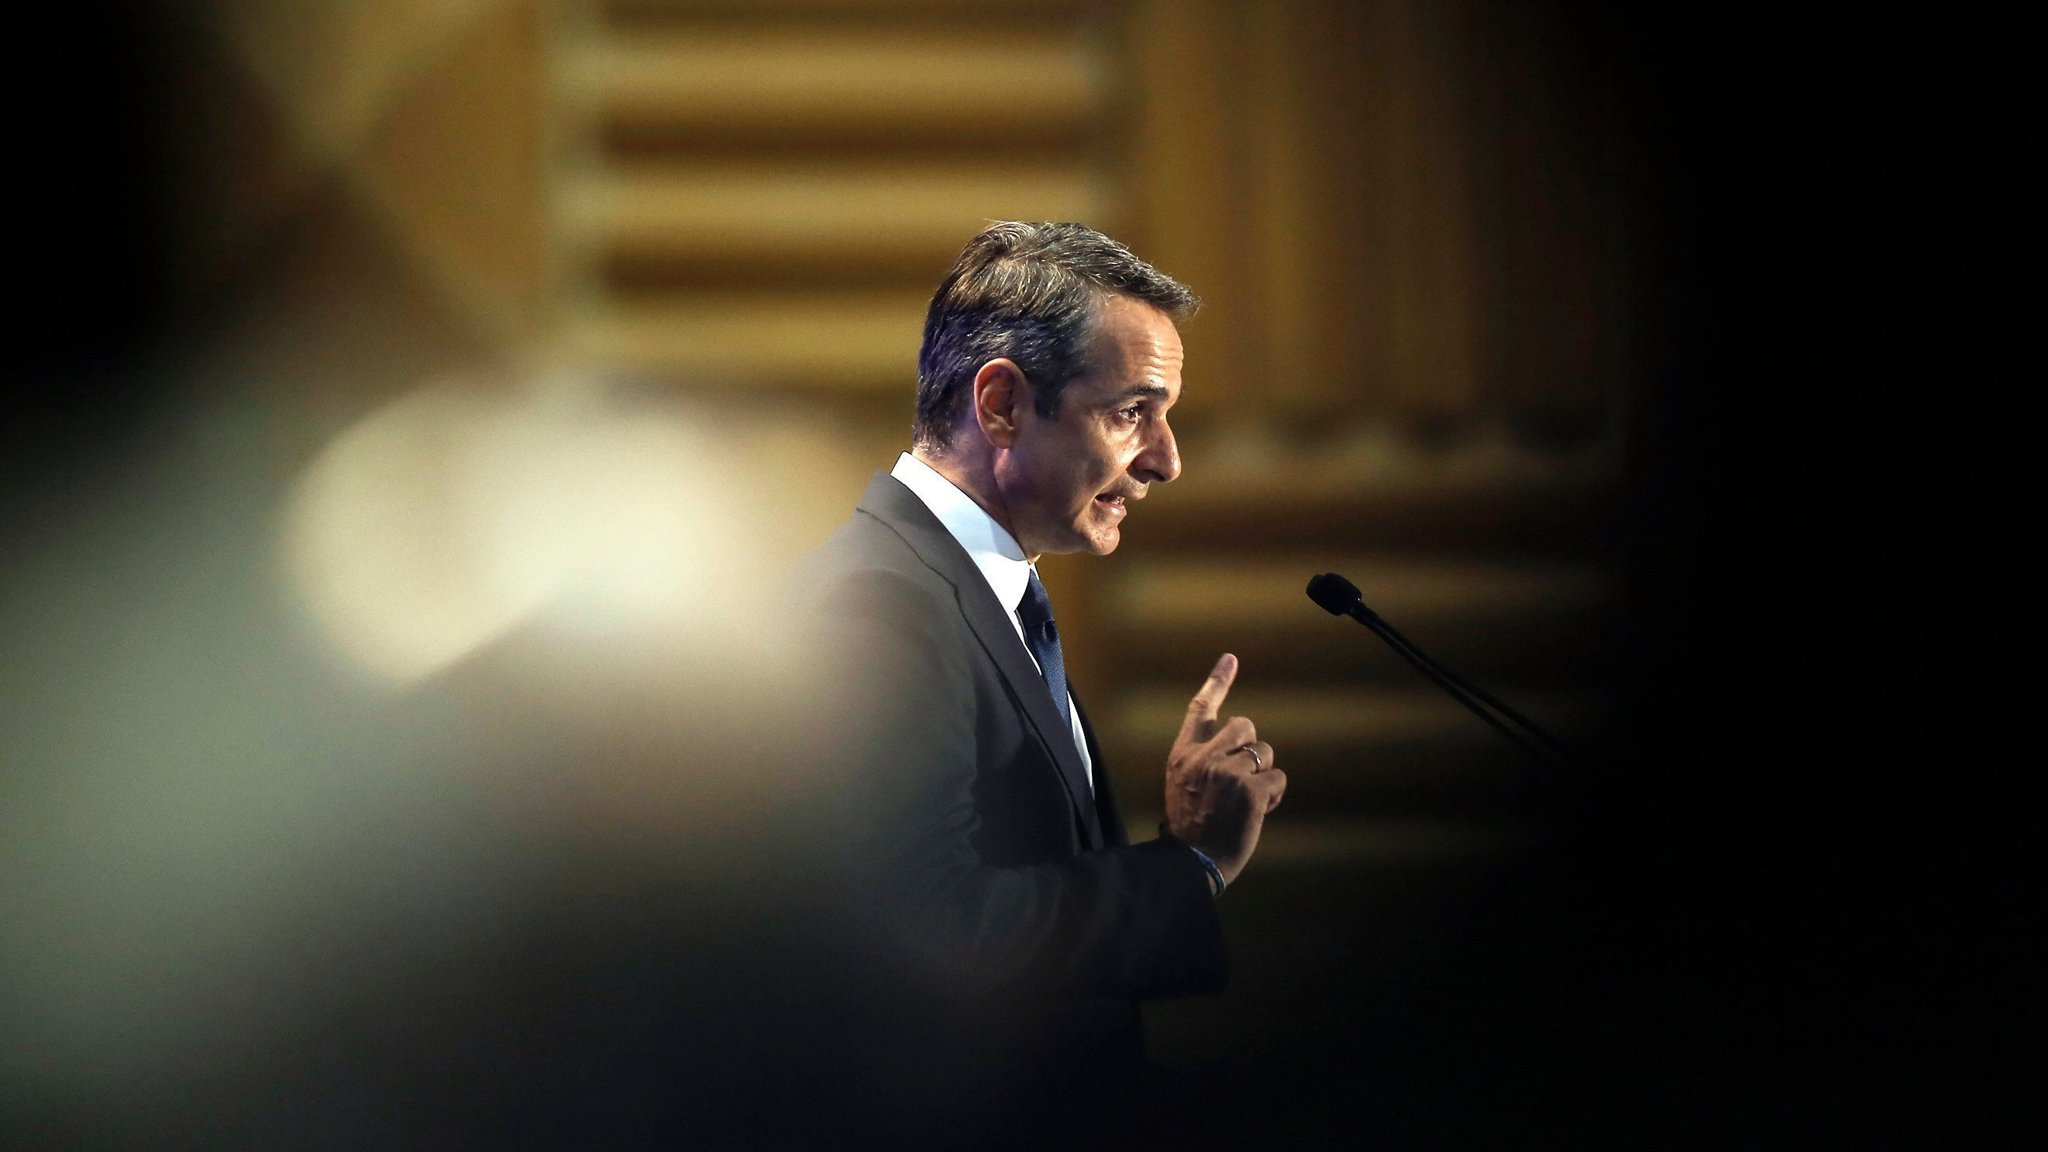 Greece's Mitsotakis calls for tax cuts and reforms